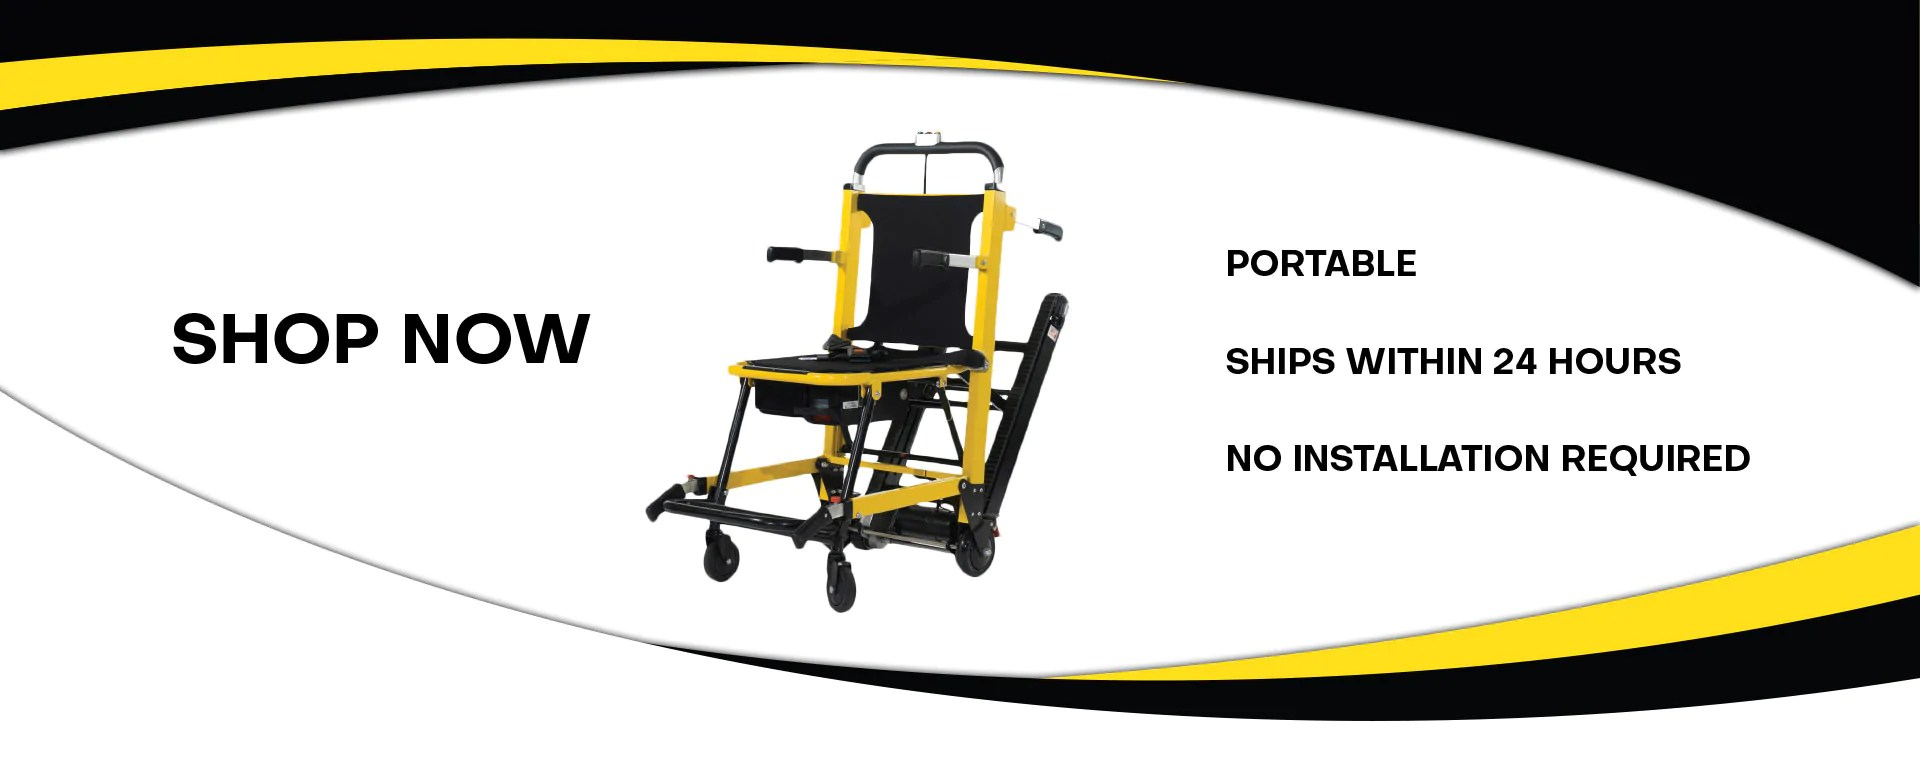 Stair Chair Lift Prices Motorized Stair Chair Power Stair Lift For Sale Mobilestairlift